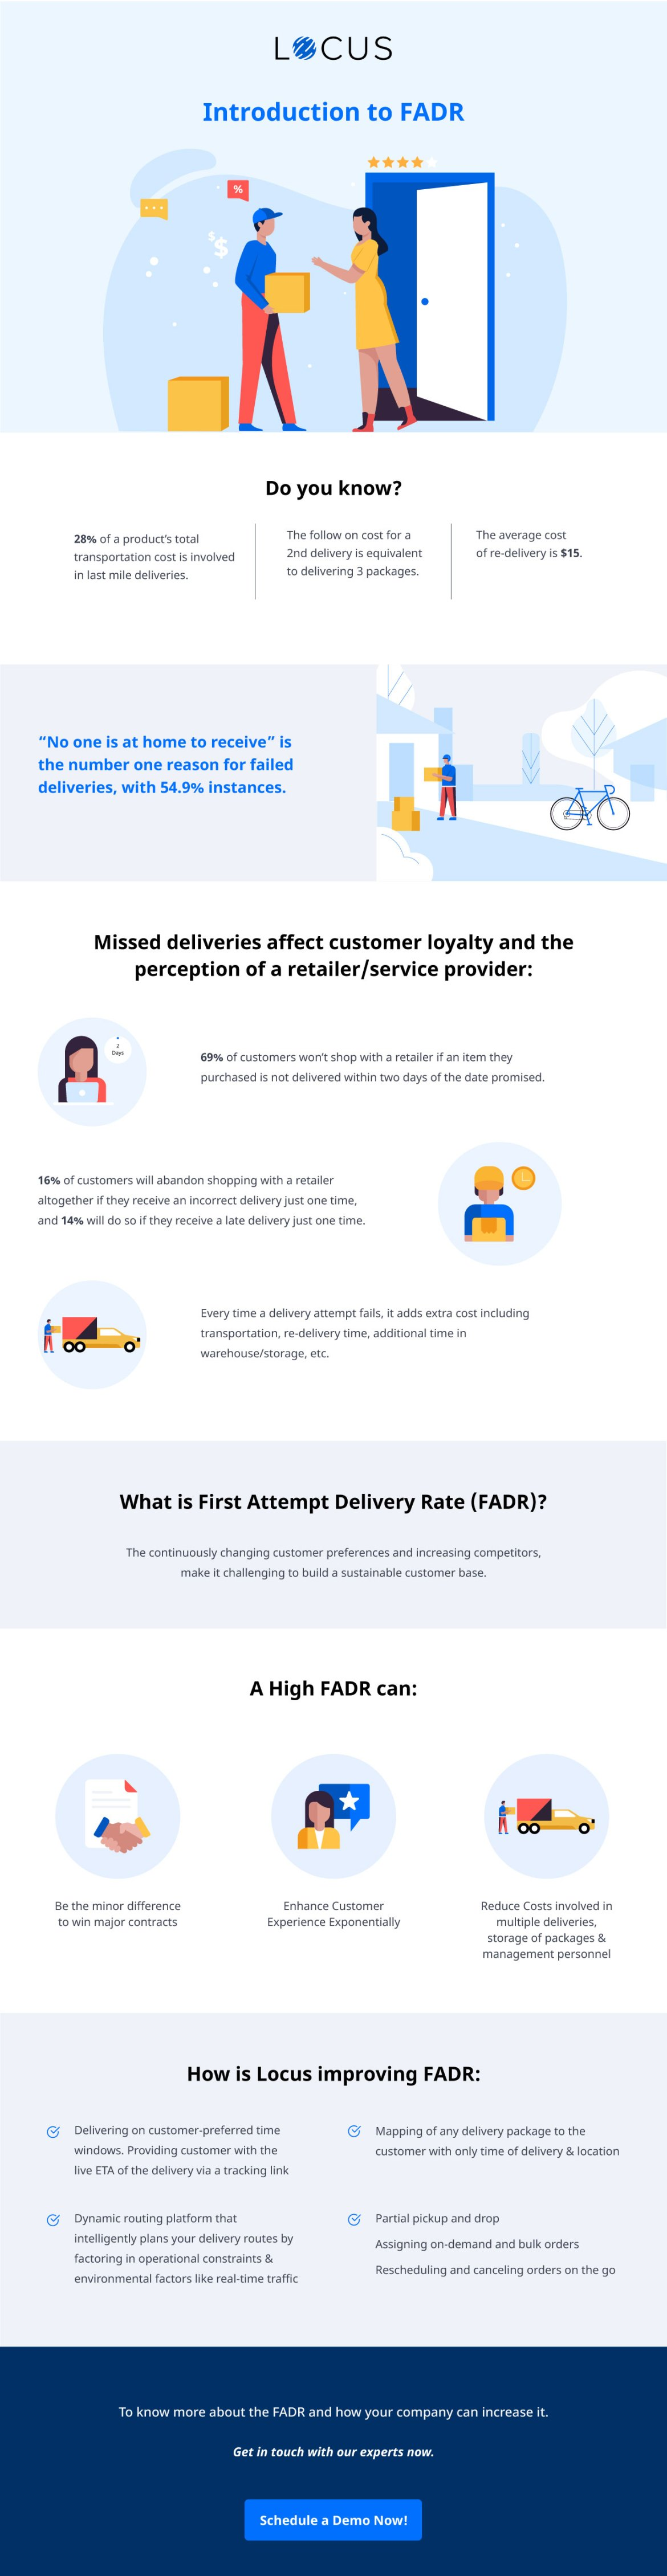 Introducing FADR by Locus | First Attempt Delivery Rate